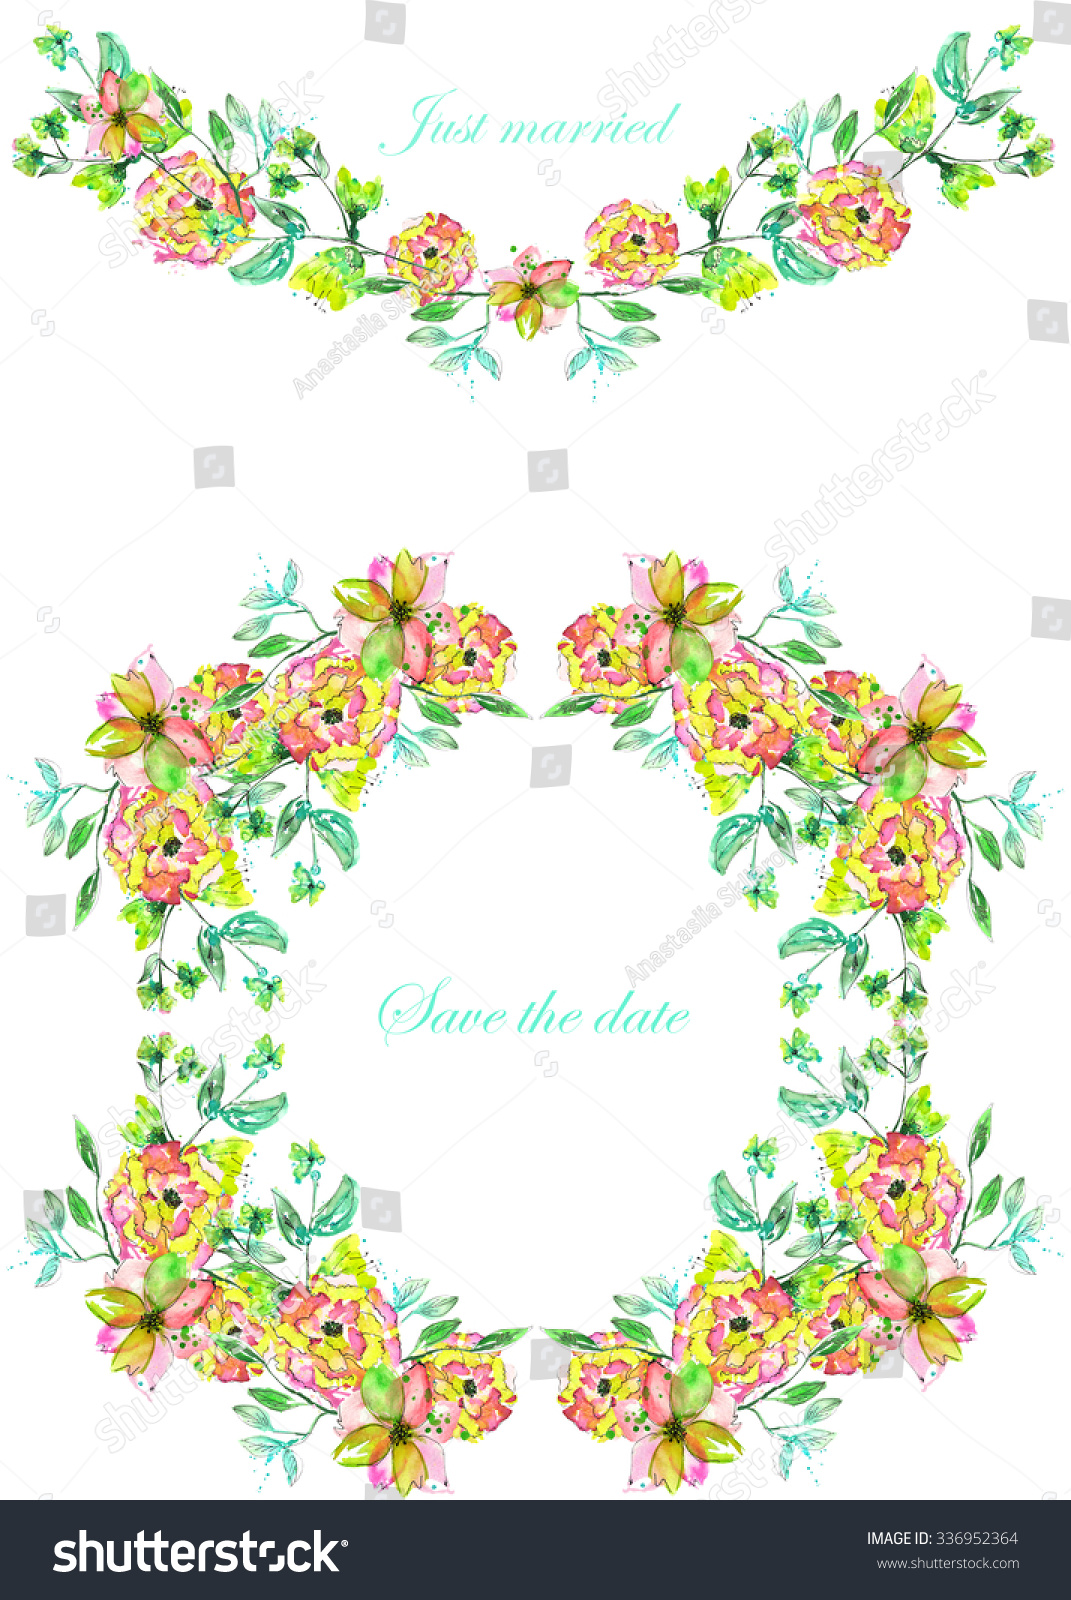 Circle Frame Wreath And Garland Of Yellow And Pink Flowers And